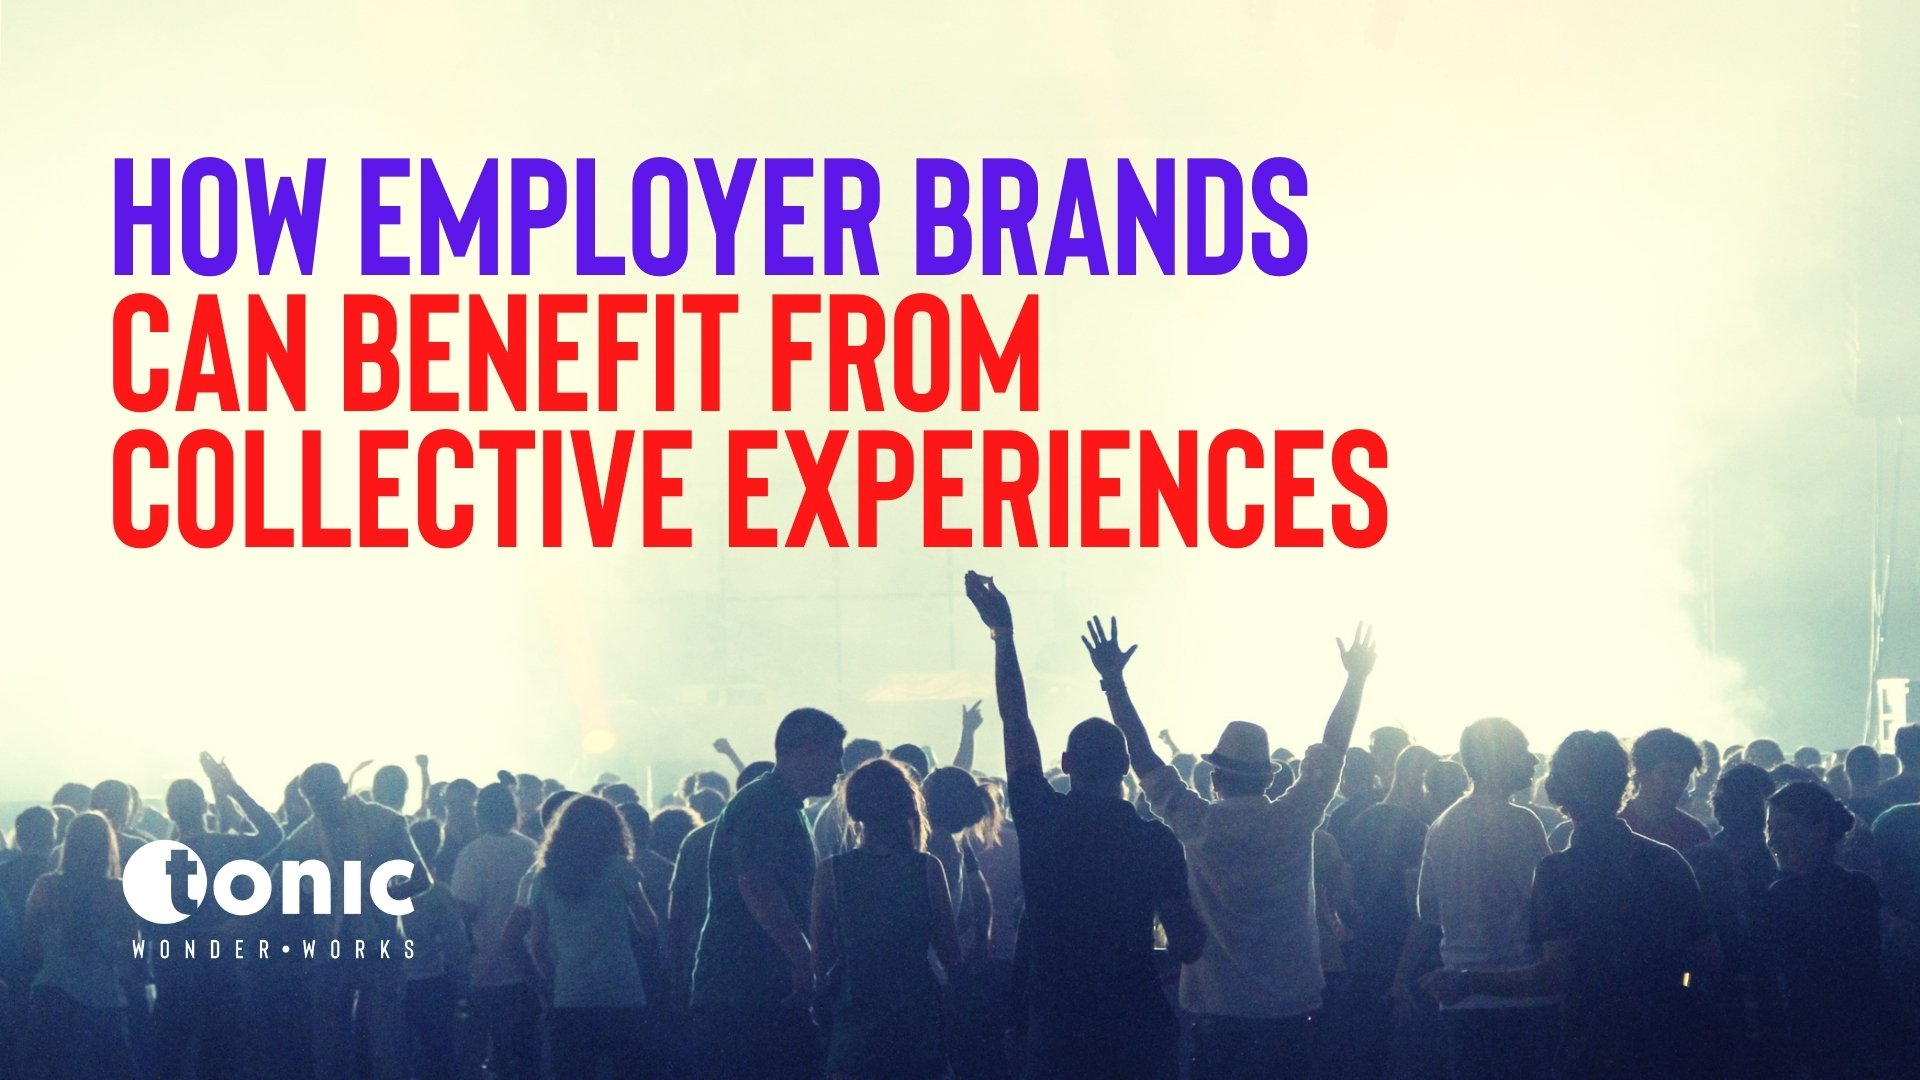 How employer brands can benefit from collective experiences.